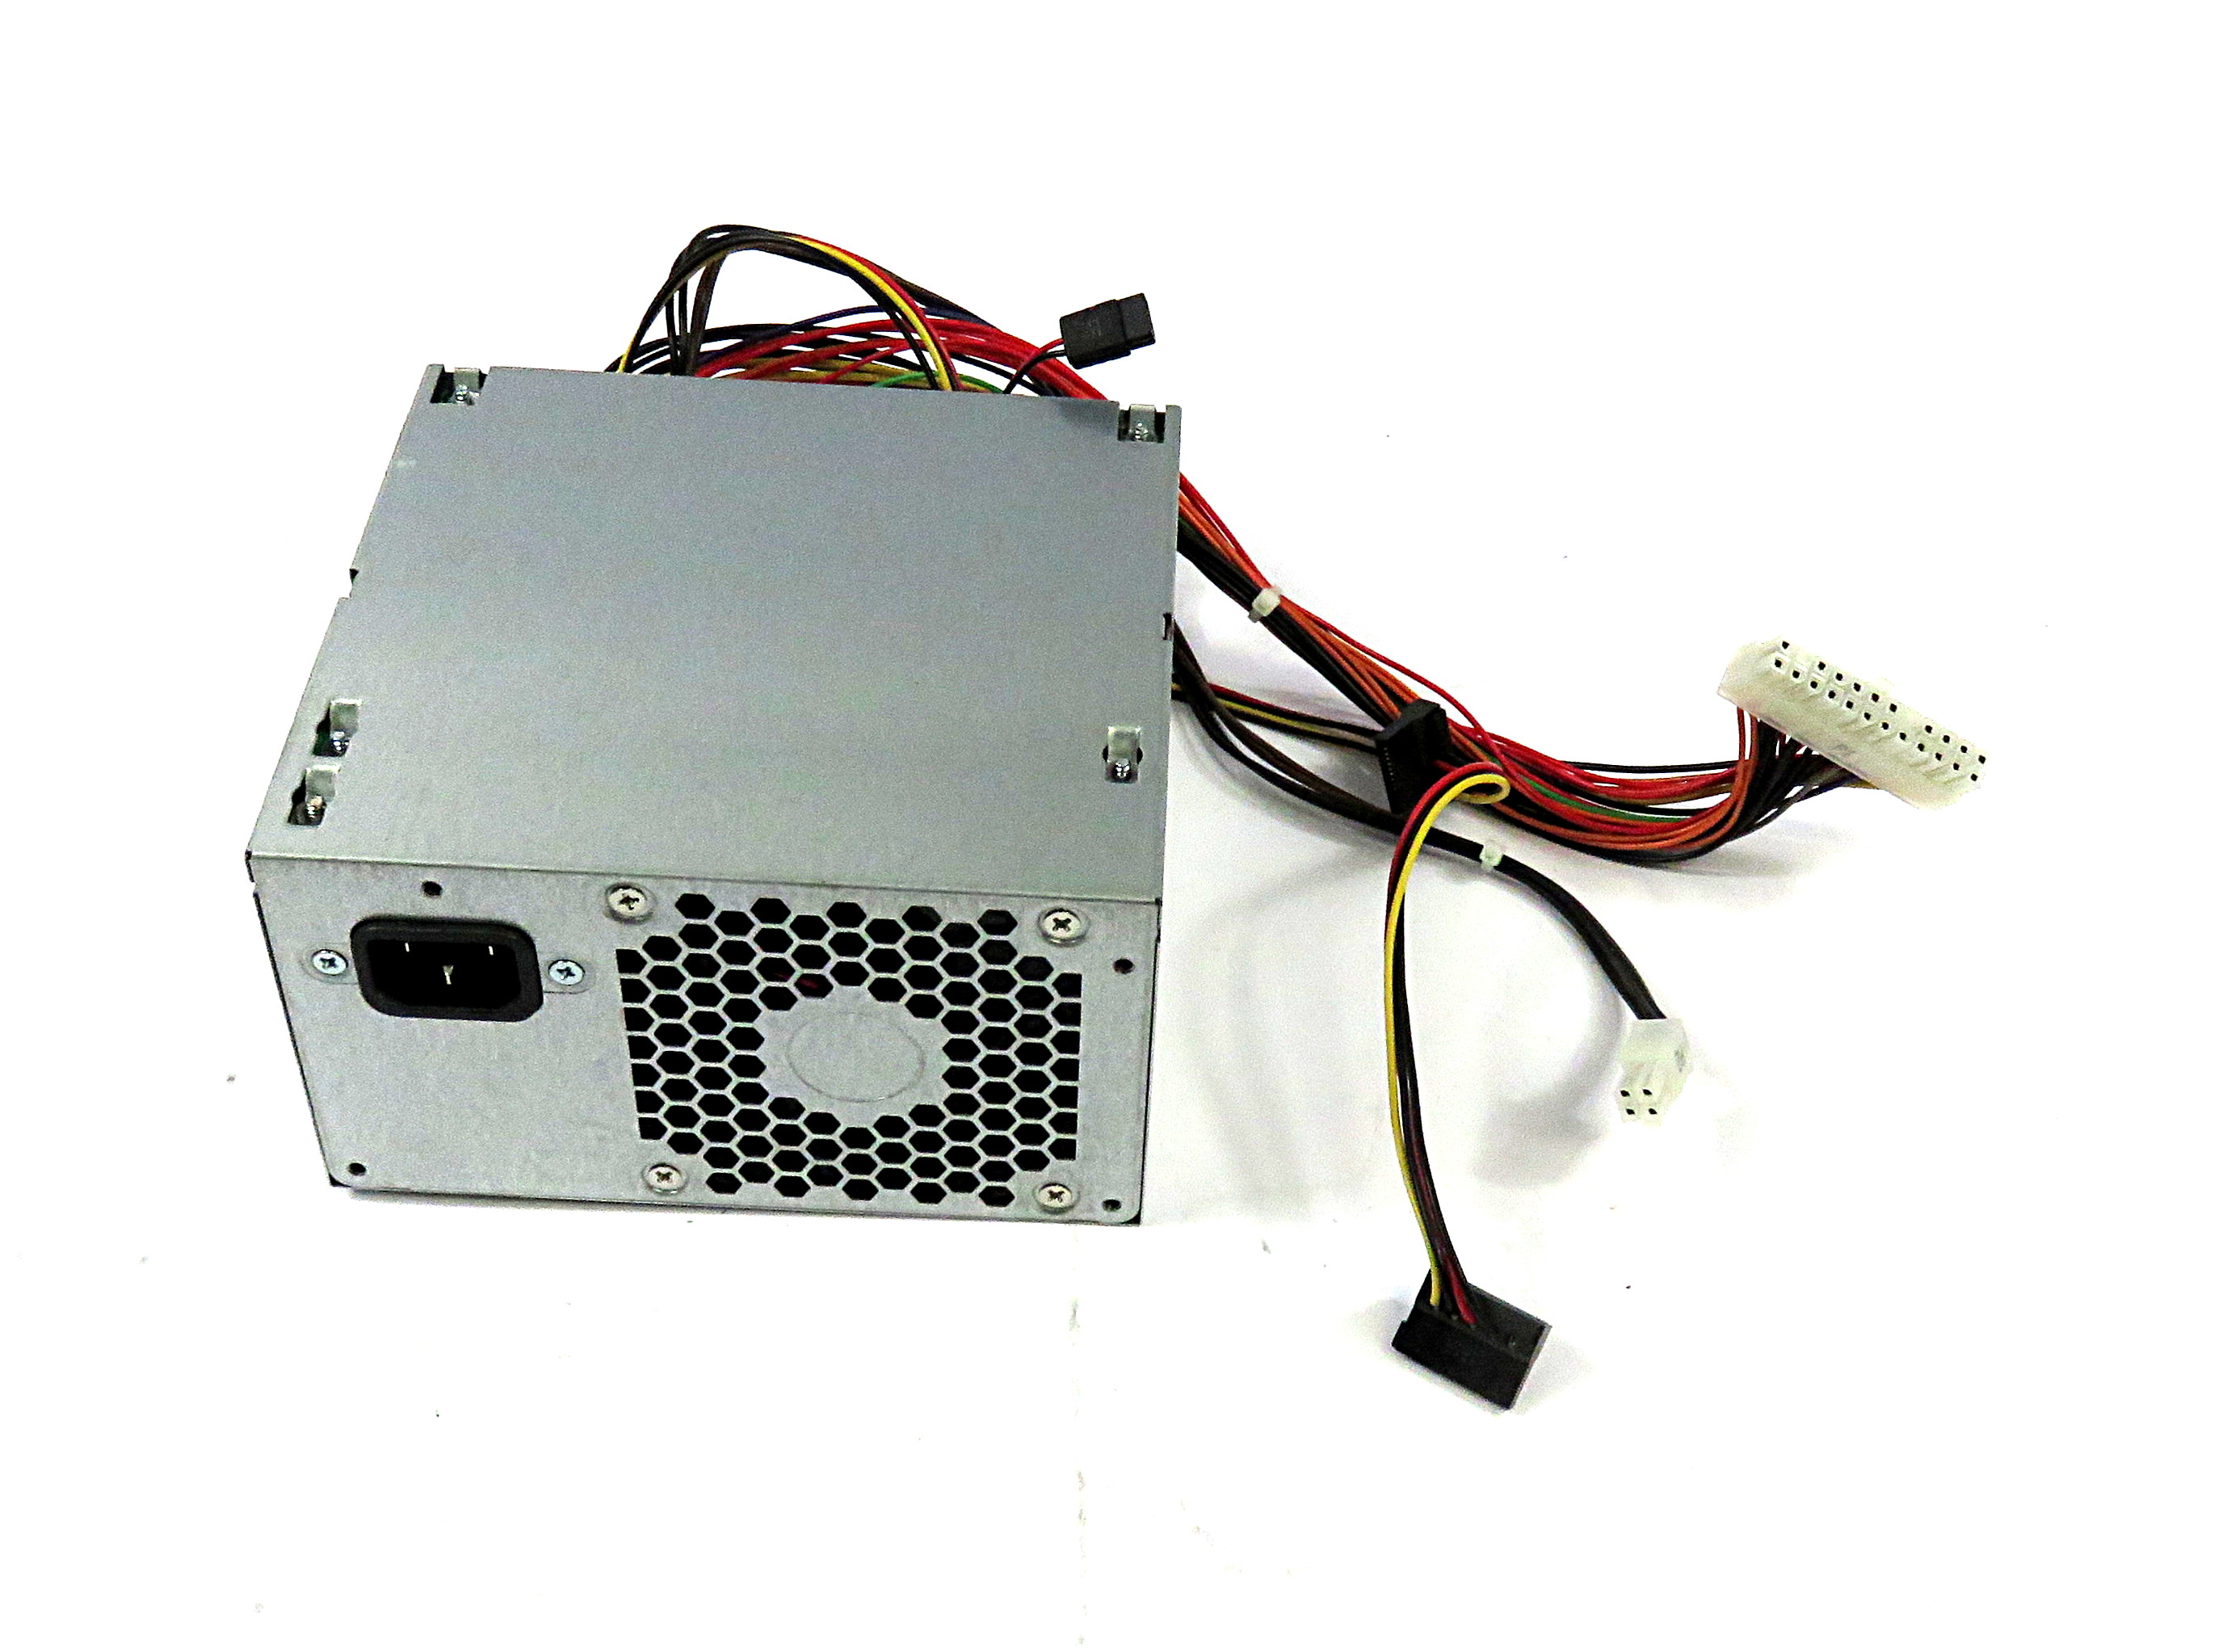 HP 801550-001 DPS-180AB-17 180W Power Supply For B&O Pavilion Desktop PC